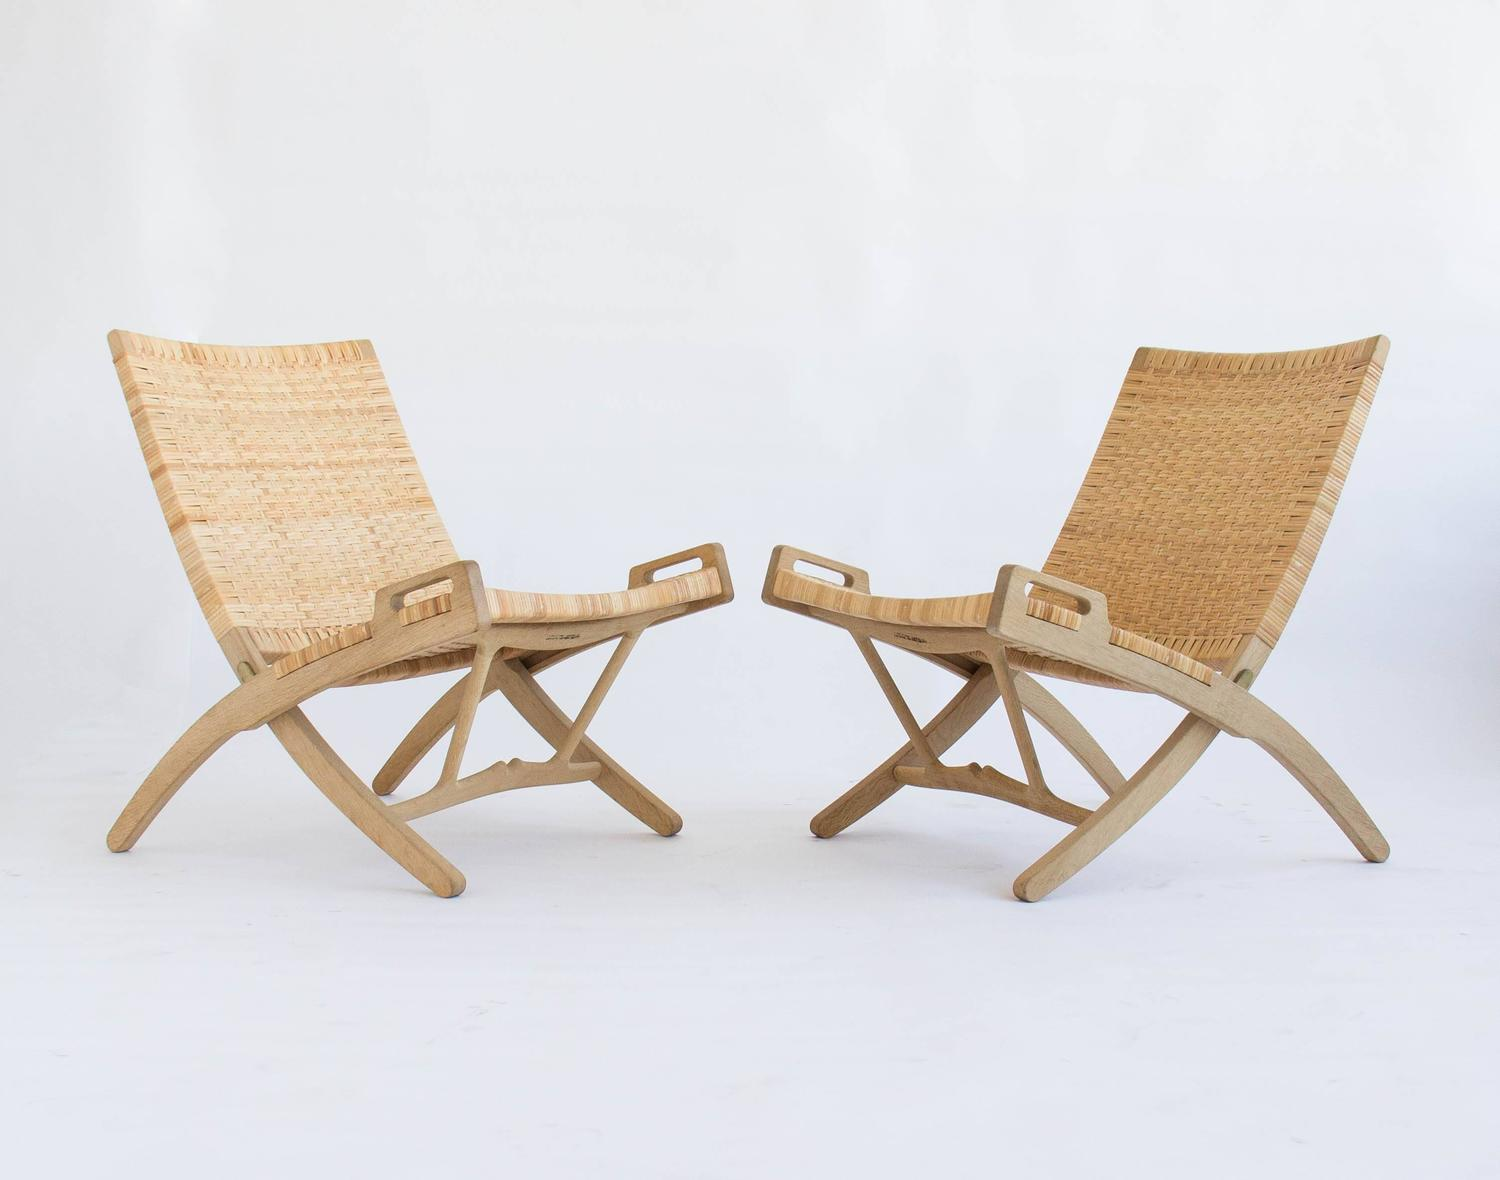 Pair of Oak and Cane Folding Lounge Chairs by Hans Wegner for PP Møbler For Sale at 1stdibs